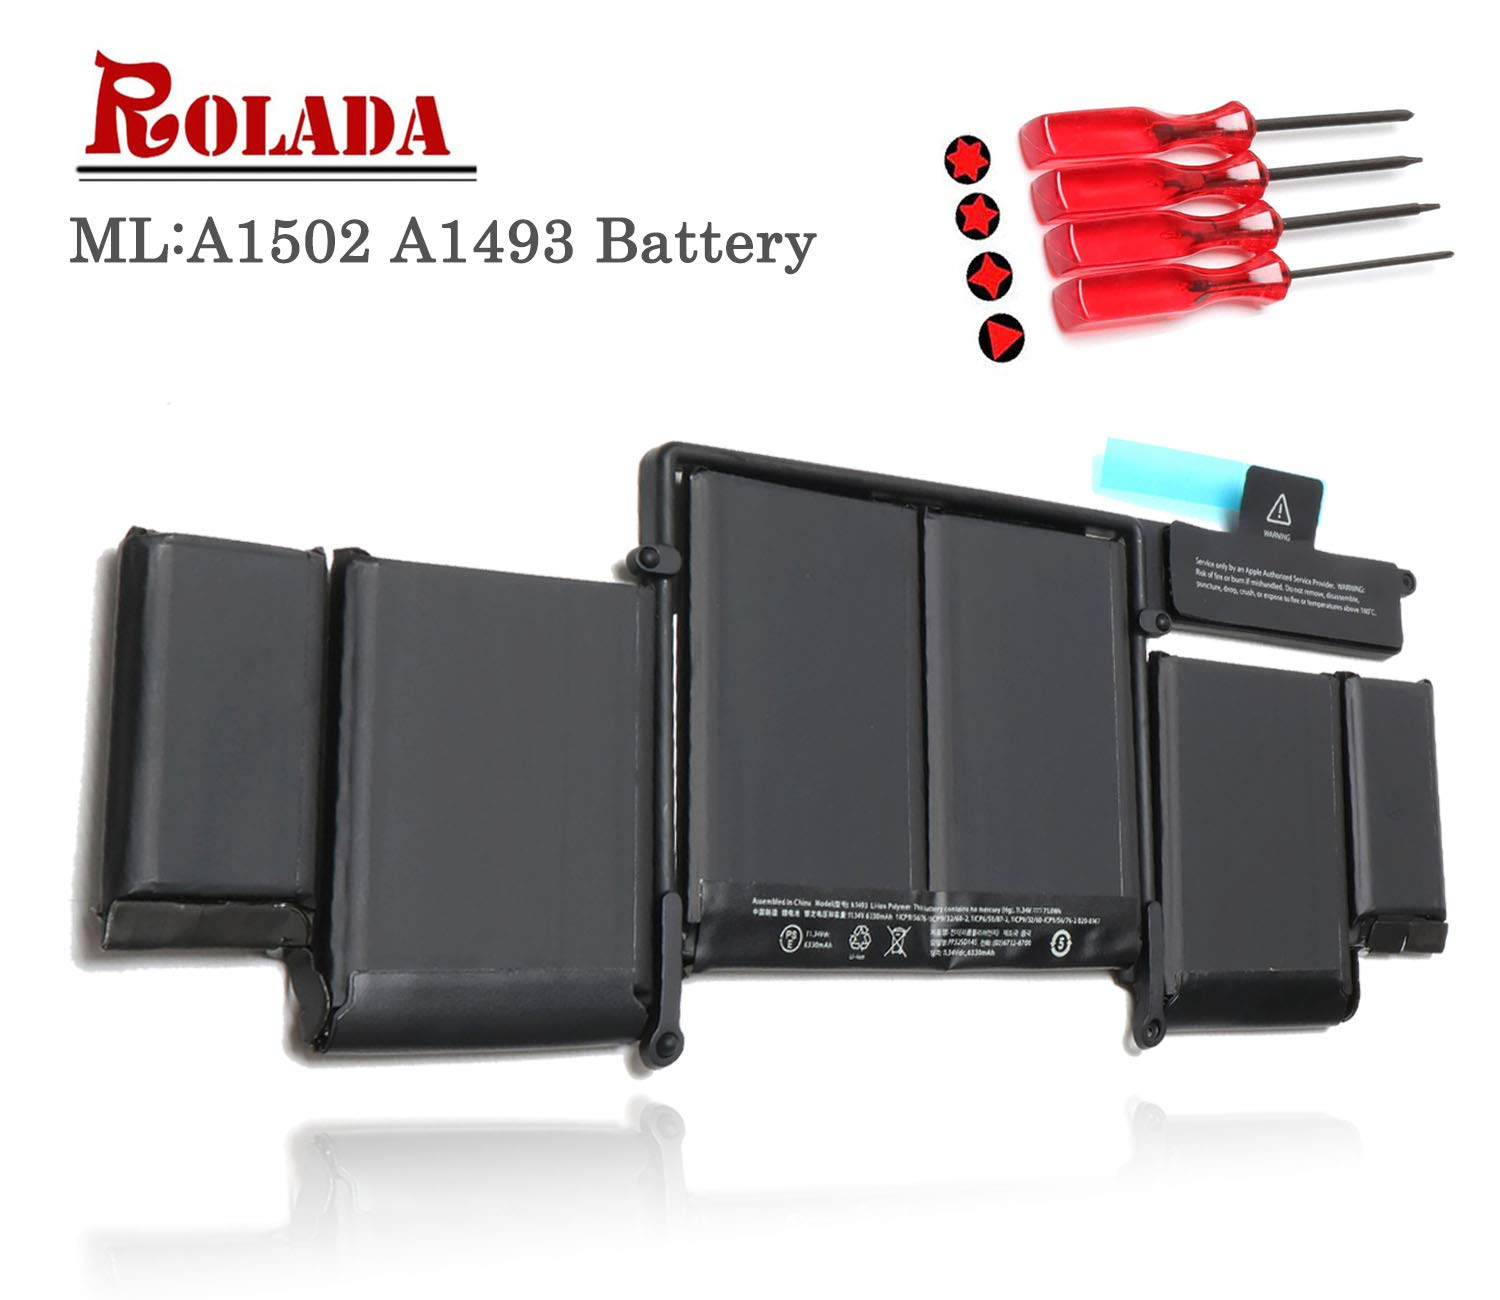 A1493 New Laptop Battery for Apple A1502 ME864LL/A ME866LL/A; MacBook Pro 13'' Retina Battery-Only for Late 2013, Mid 2014 Version [Li-Polymer 11.34V 71.8Wh]